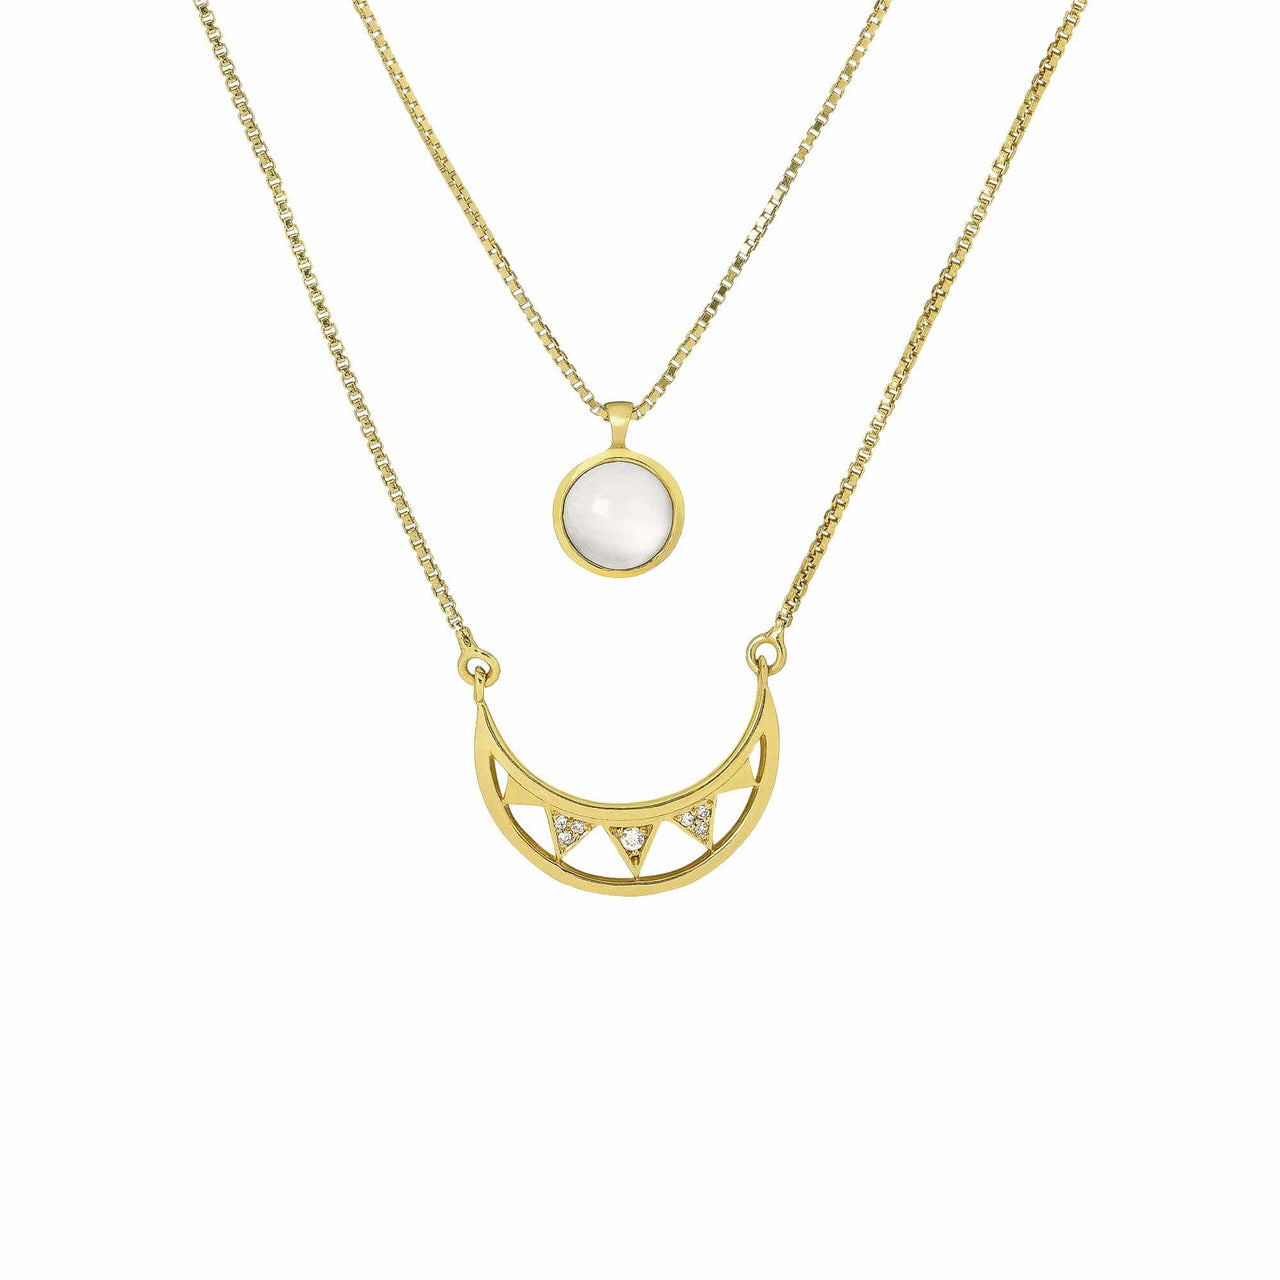 Mel Bandeira Necklaces 18K Gold Plated Sterling Silver Crescent Moon Double Layered Necklace